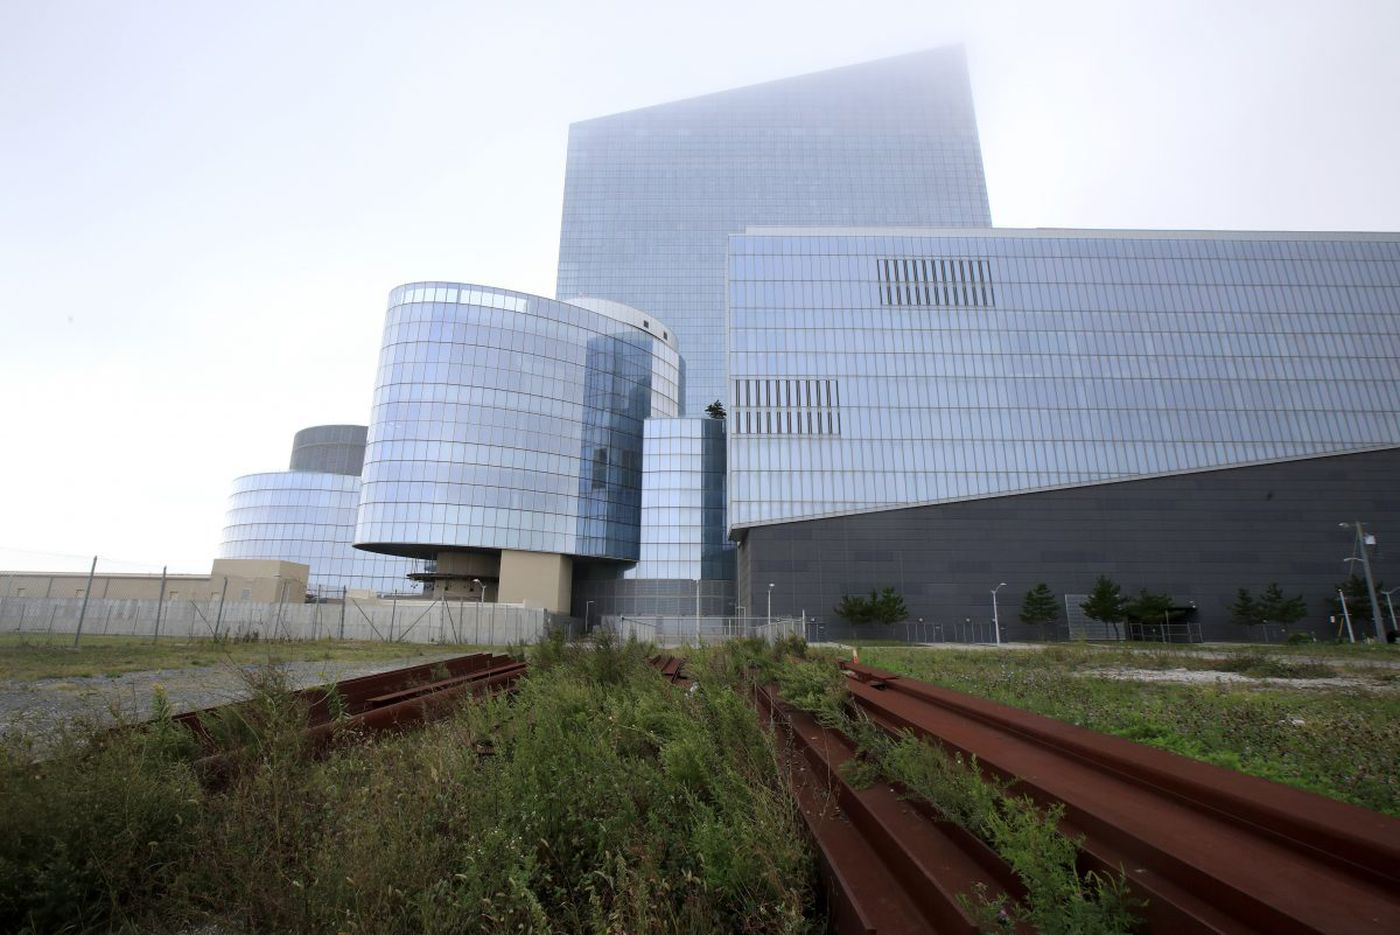 Has the Revel Casino been sold to Denver-based AC Ocean Walk? Moody's rates possible owners' debt